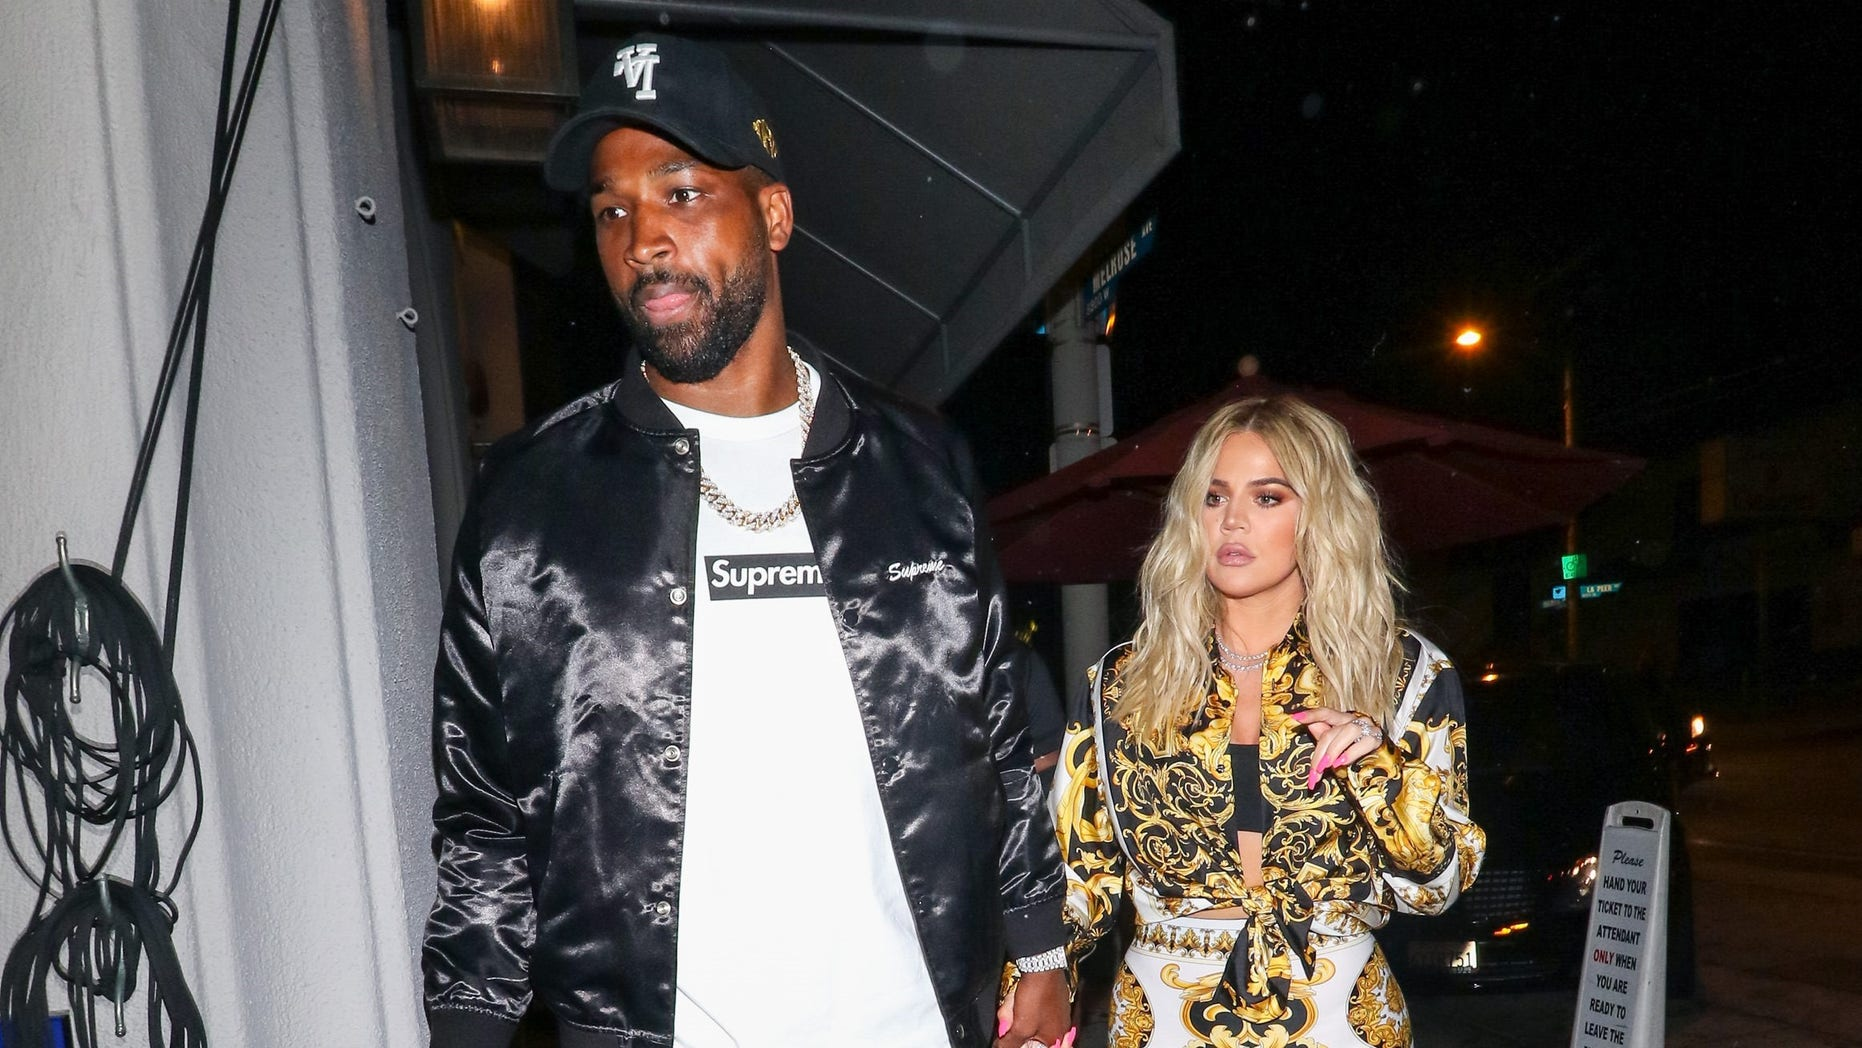 635f1eb1255b9 Khloe Kardashian defends her choice for spending the Thanksgiving holiday  with Tristan Thompson.